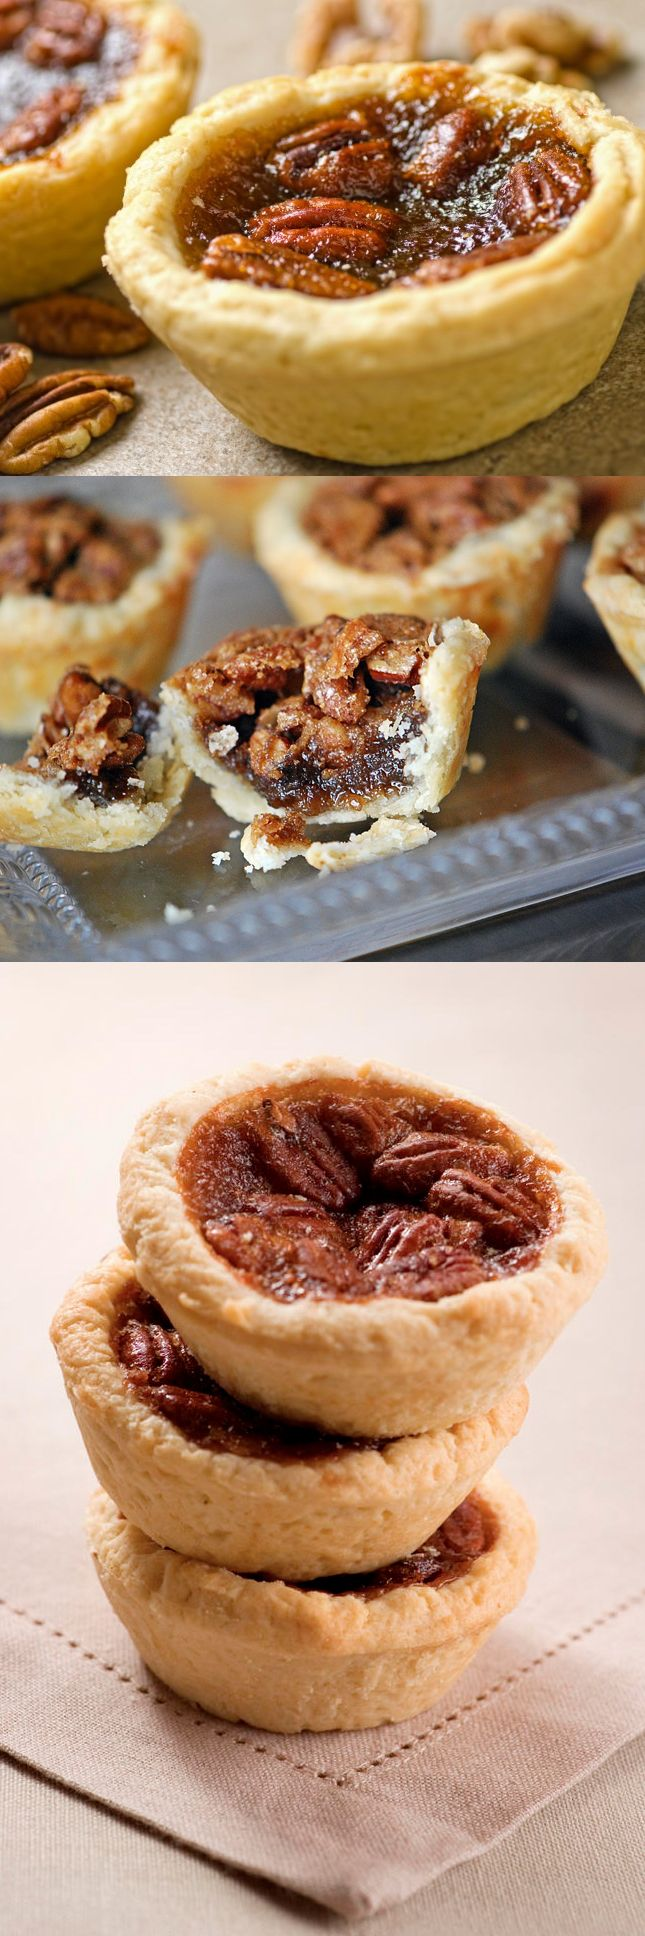 Mini pecan pie tart recipe. An alternative to the ooey-gooey rich pecan pie... Always a favorite from my mom's kitchen during the holidays!